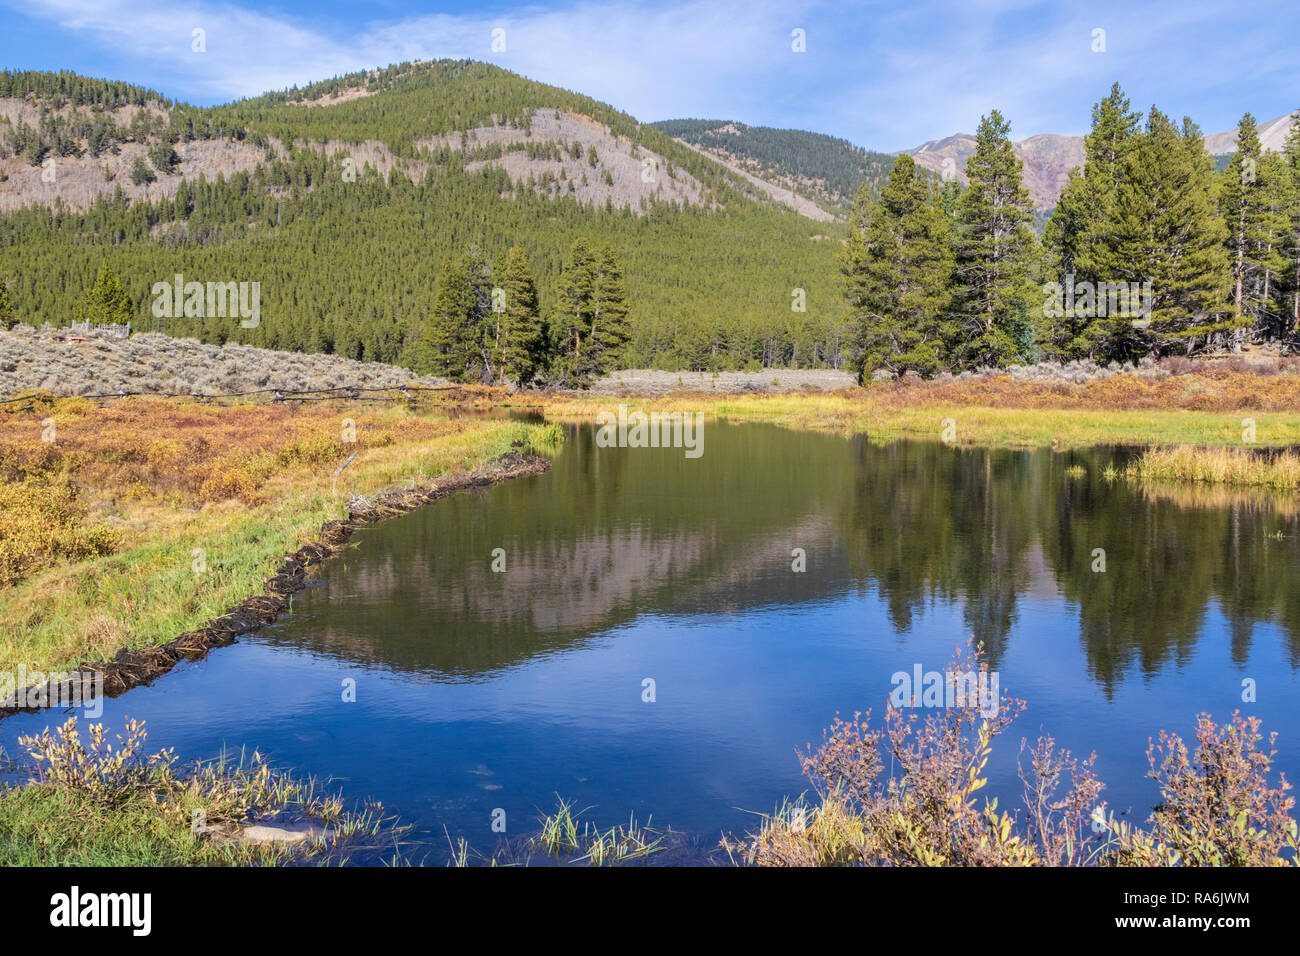 Lake by cemetery in Historic Tin Cup community in Colorado, a rural area with limited access in winter. - Stock Image